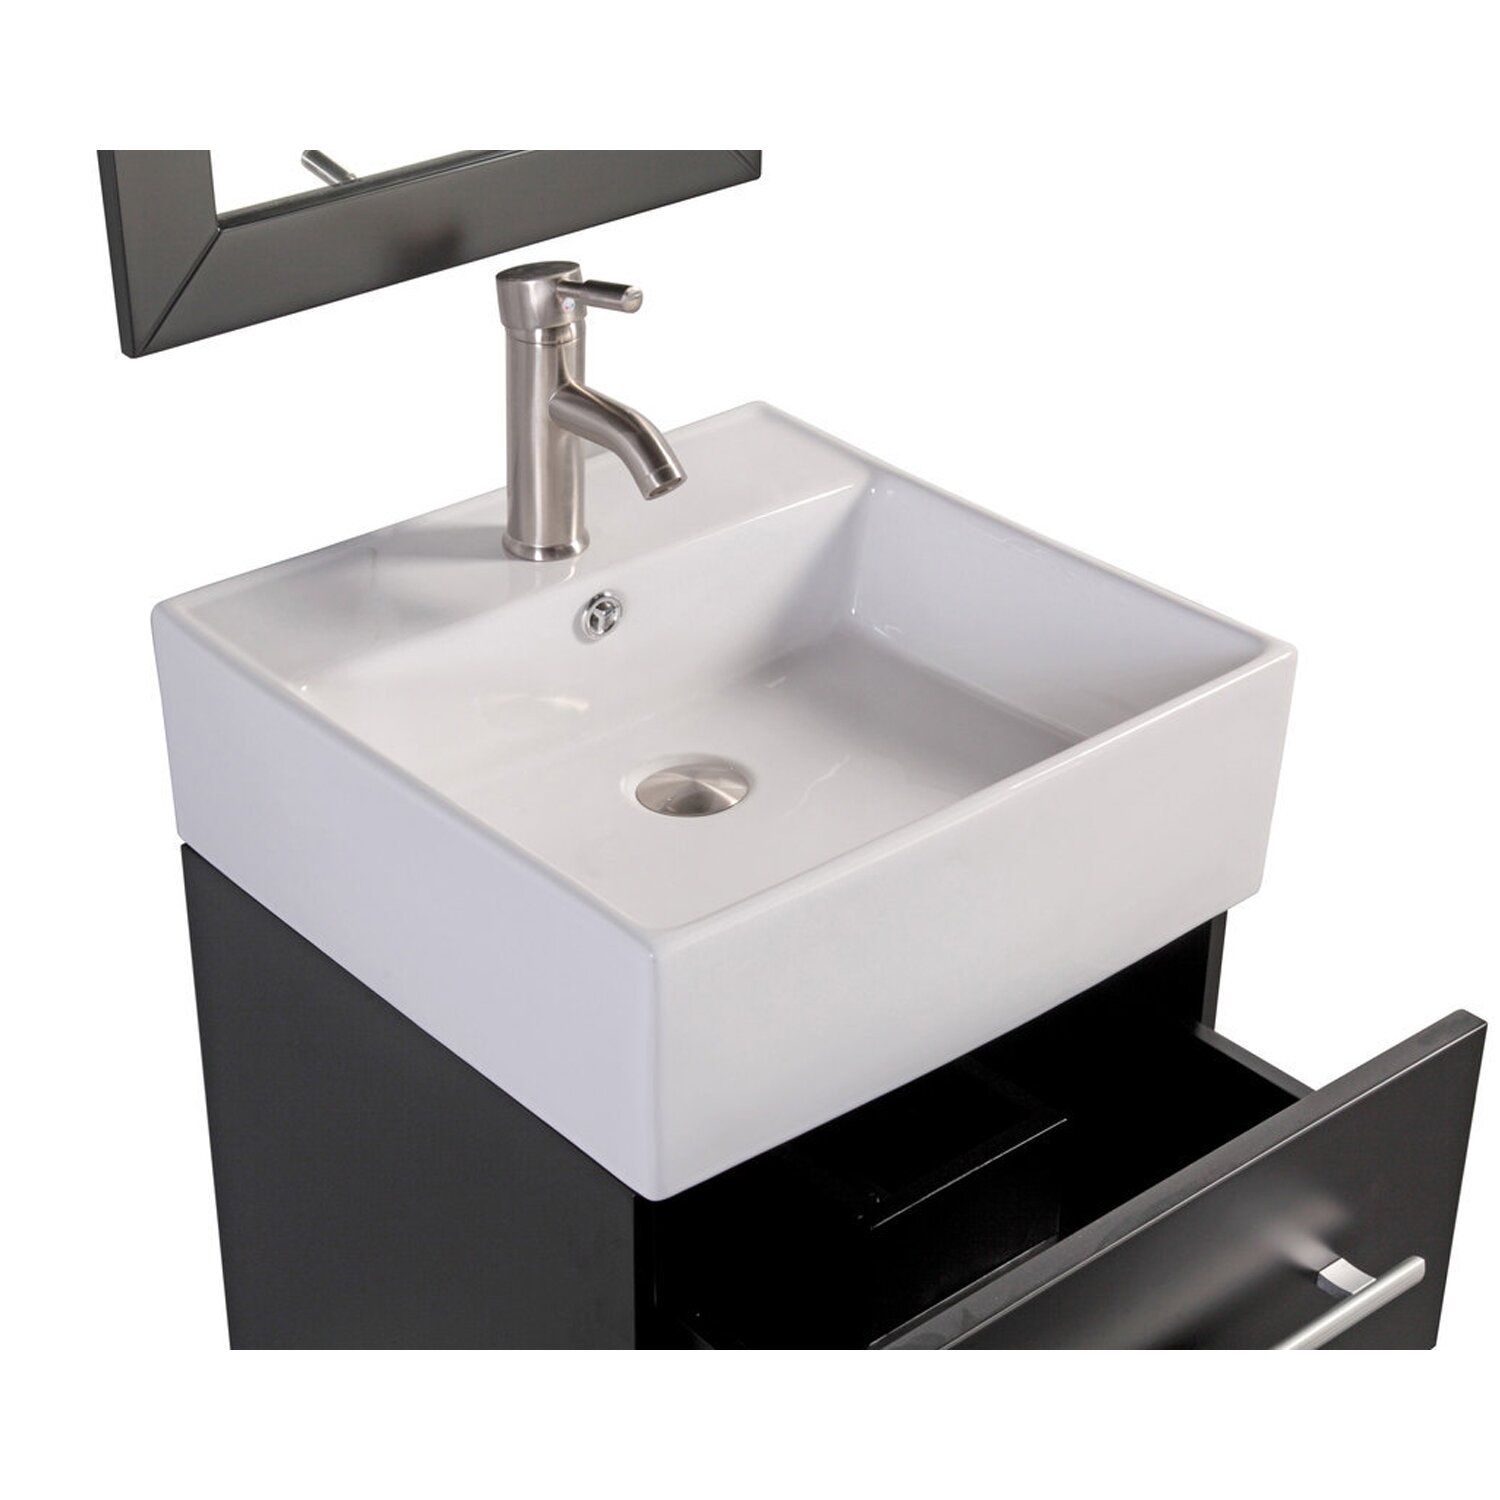 mtd vanities nepal 18 single sink wall mounted bathroom vanity set